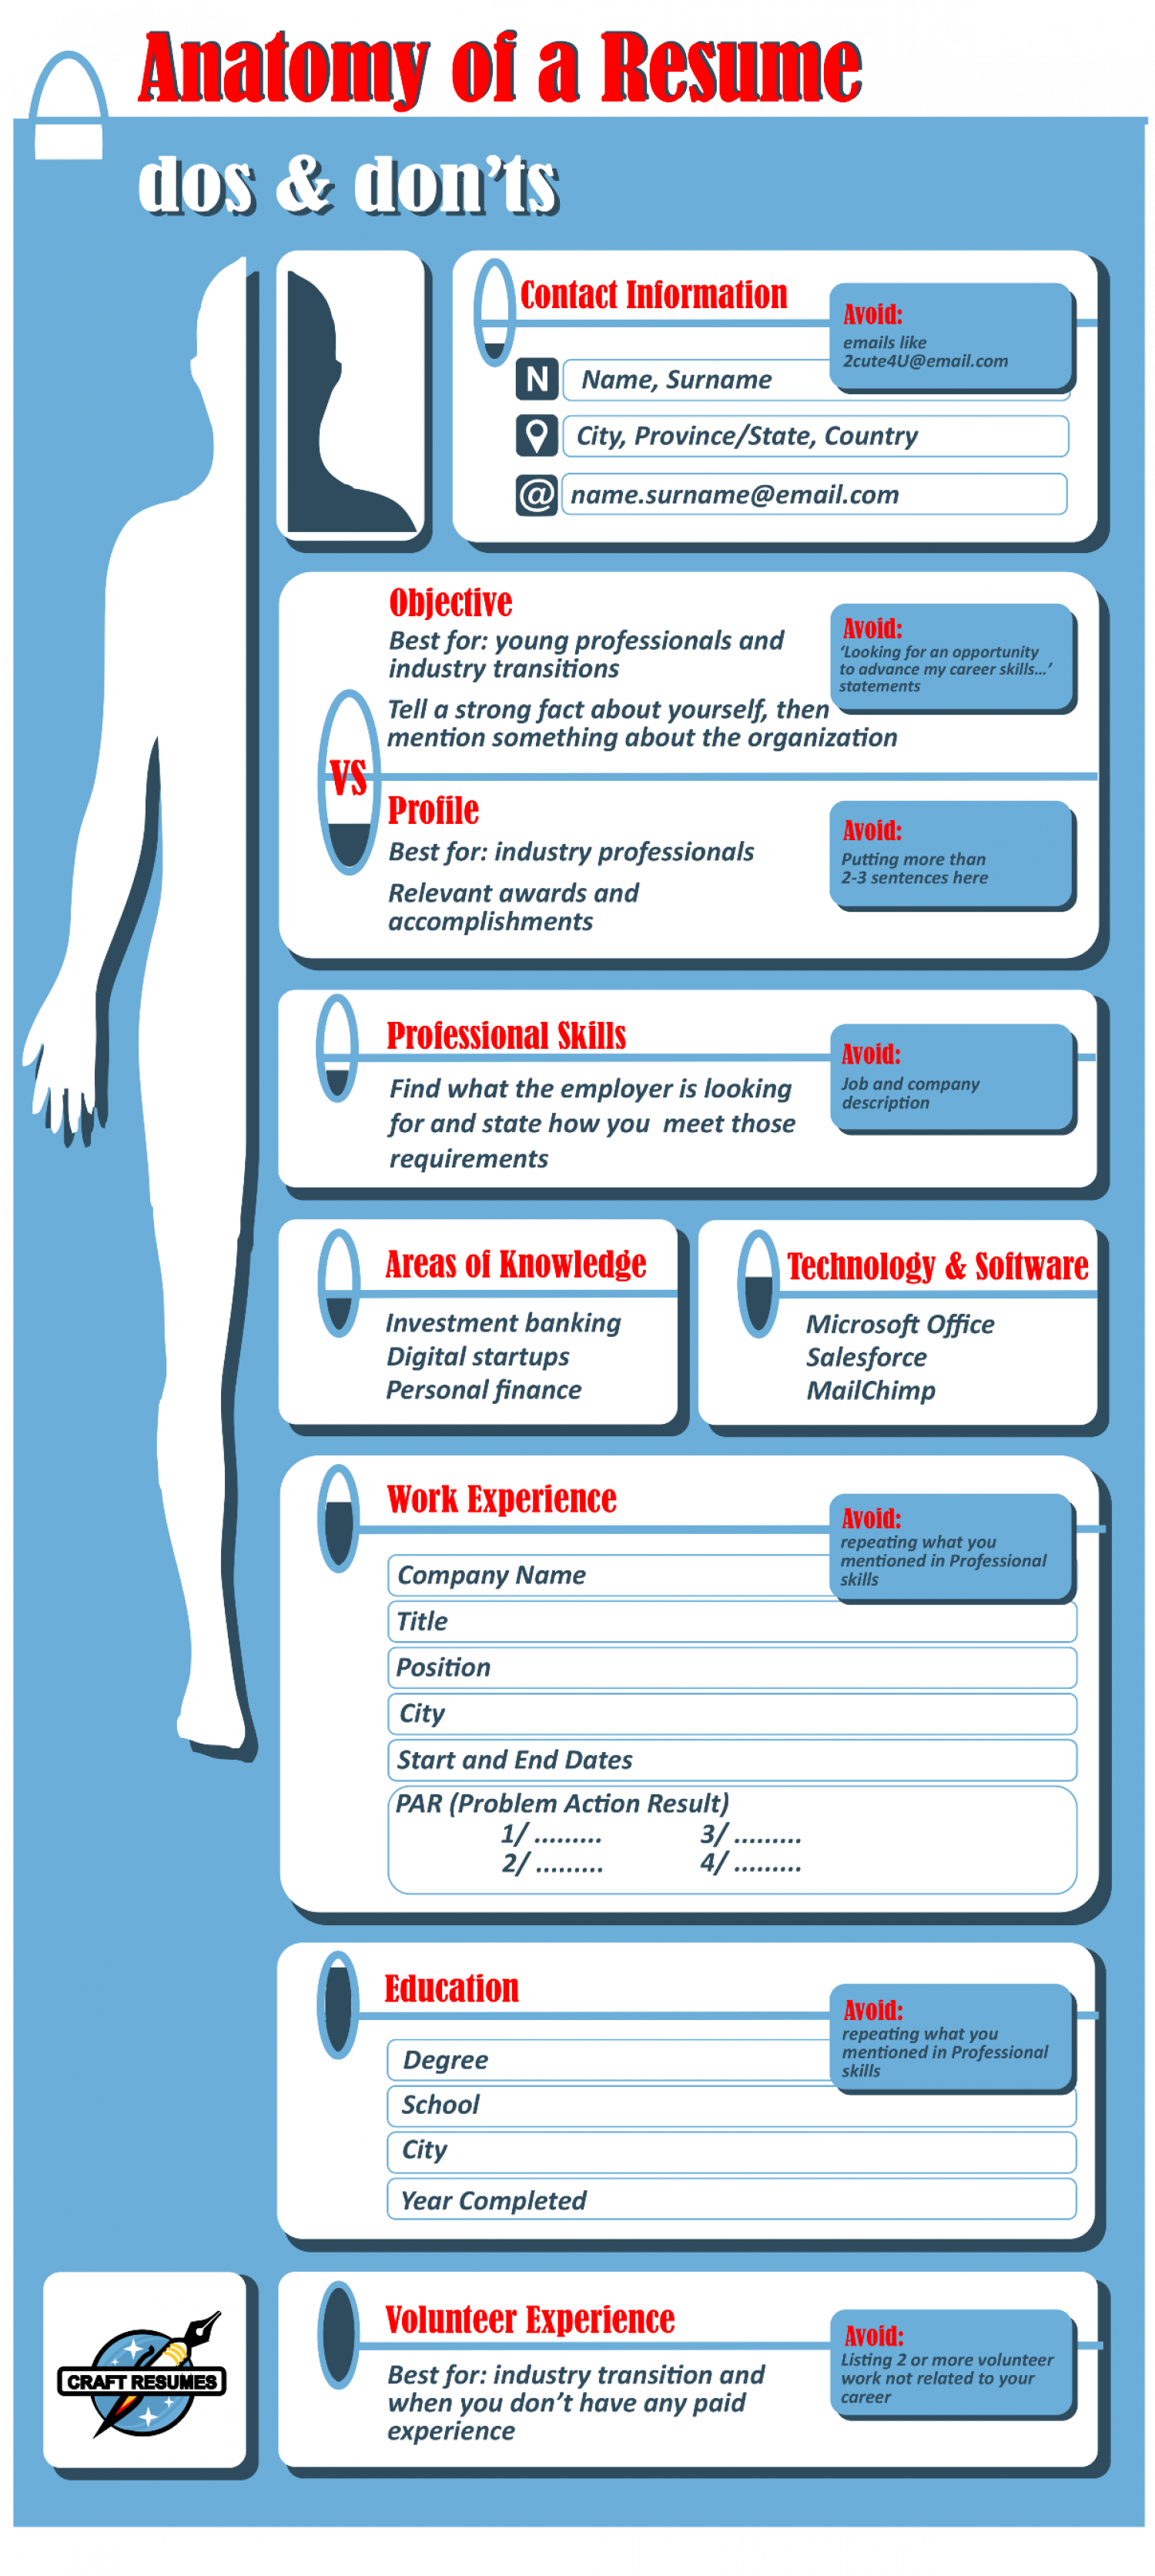 anatomy of a resume how to decode and understand visual ly